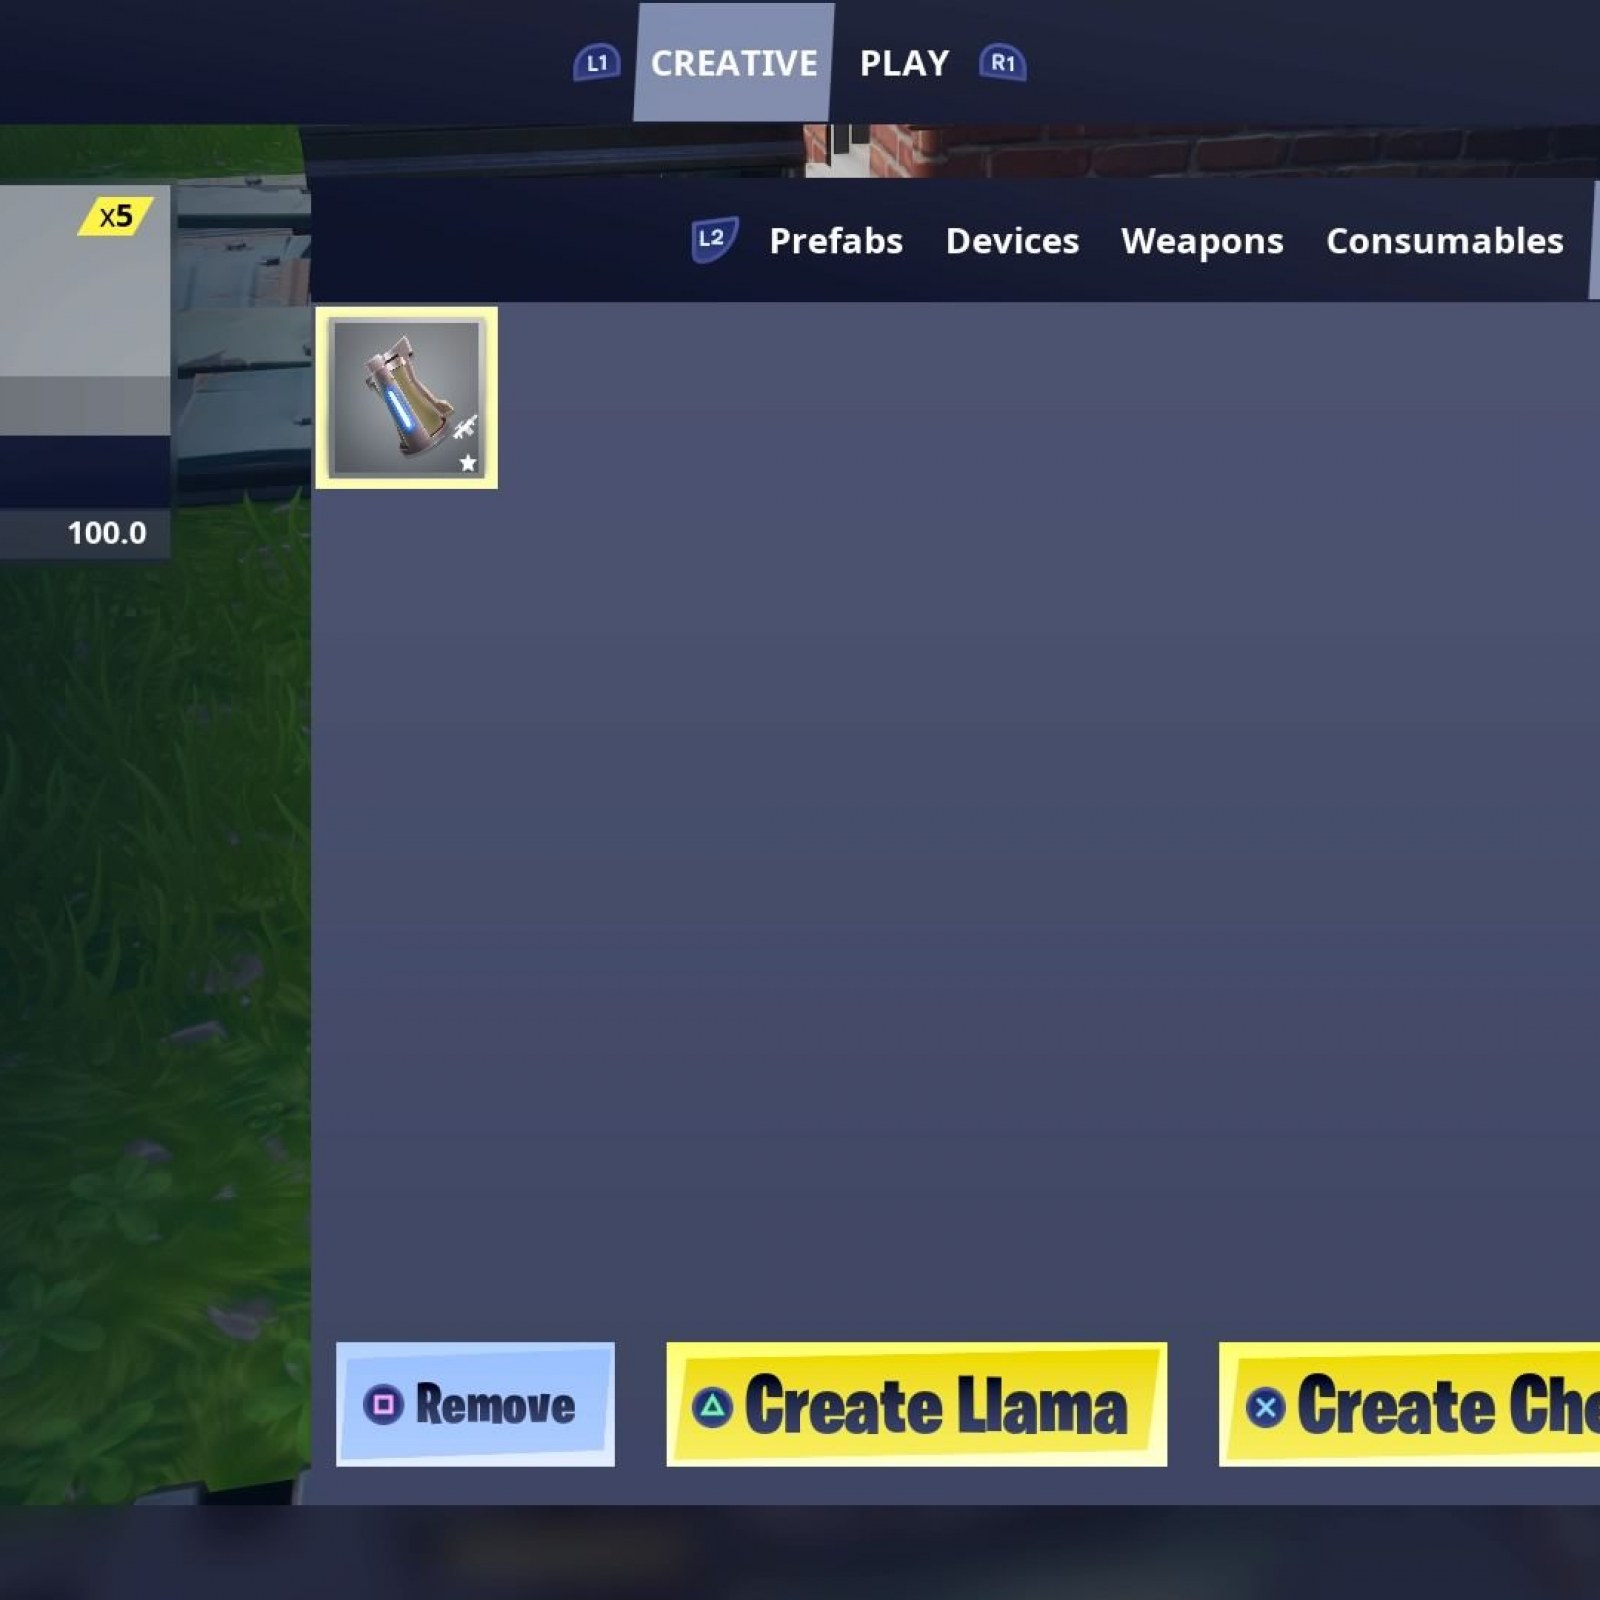 Fortnite' Creative Guide - How to Get Weapons, Use Item Spawner